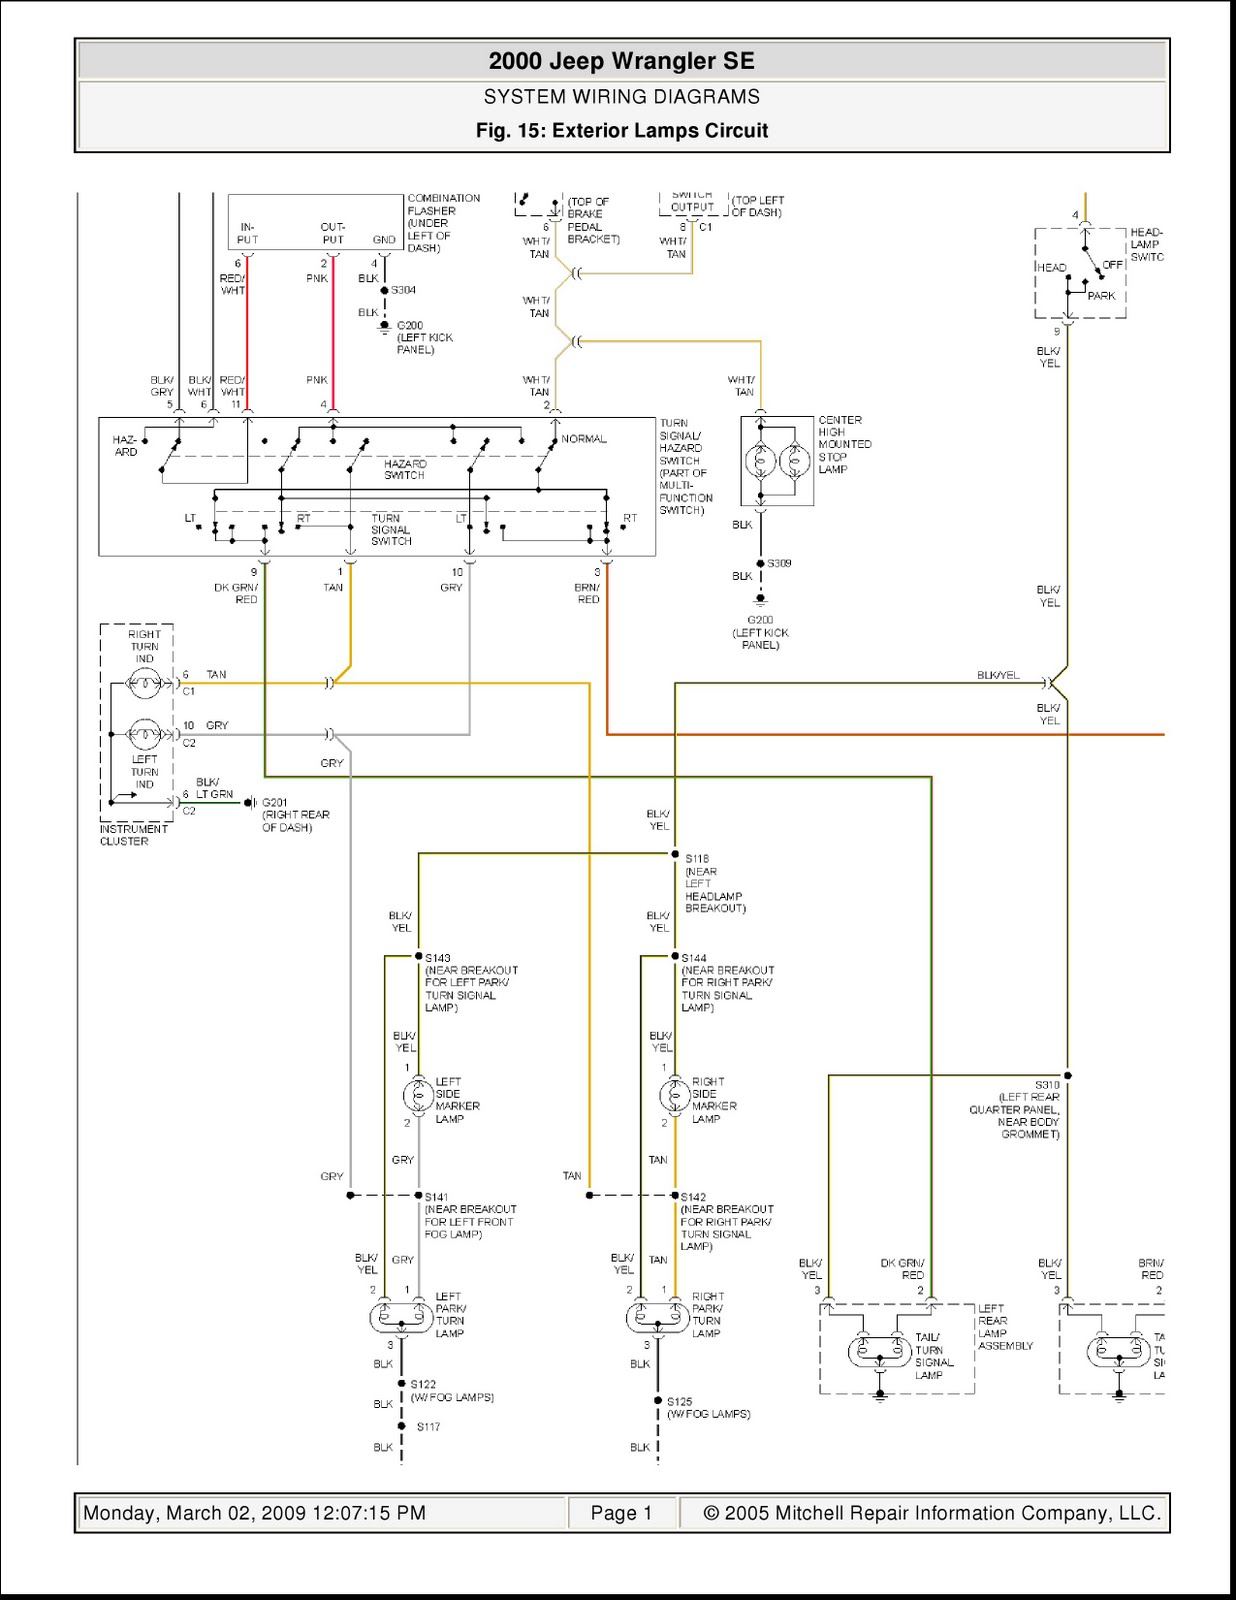 2000    Jeep       Wrangler    SE System    Wiring       Diagrams    Exterior Lamps Circuit   Schematic    Wiring       Diagrams